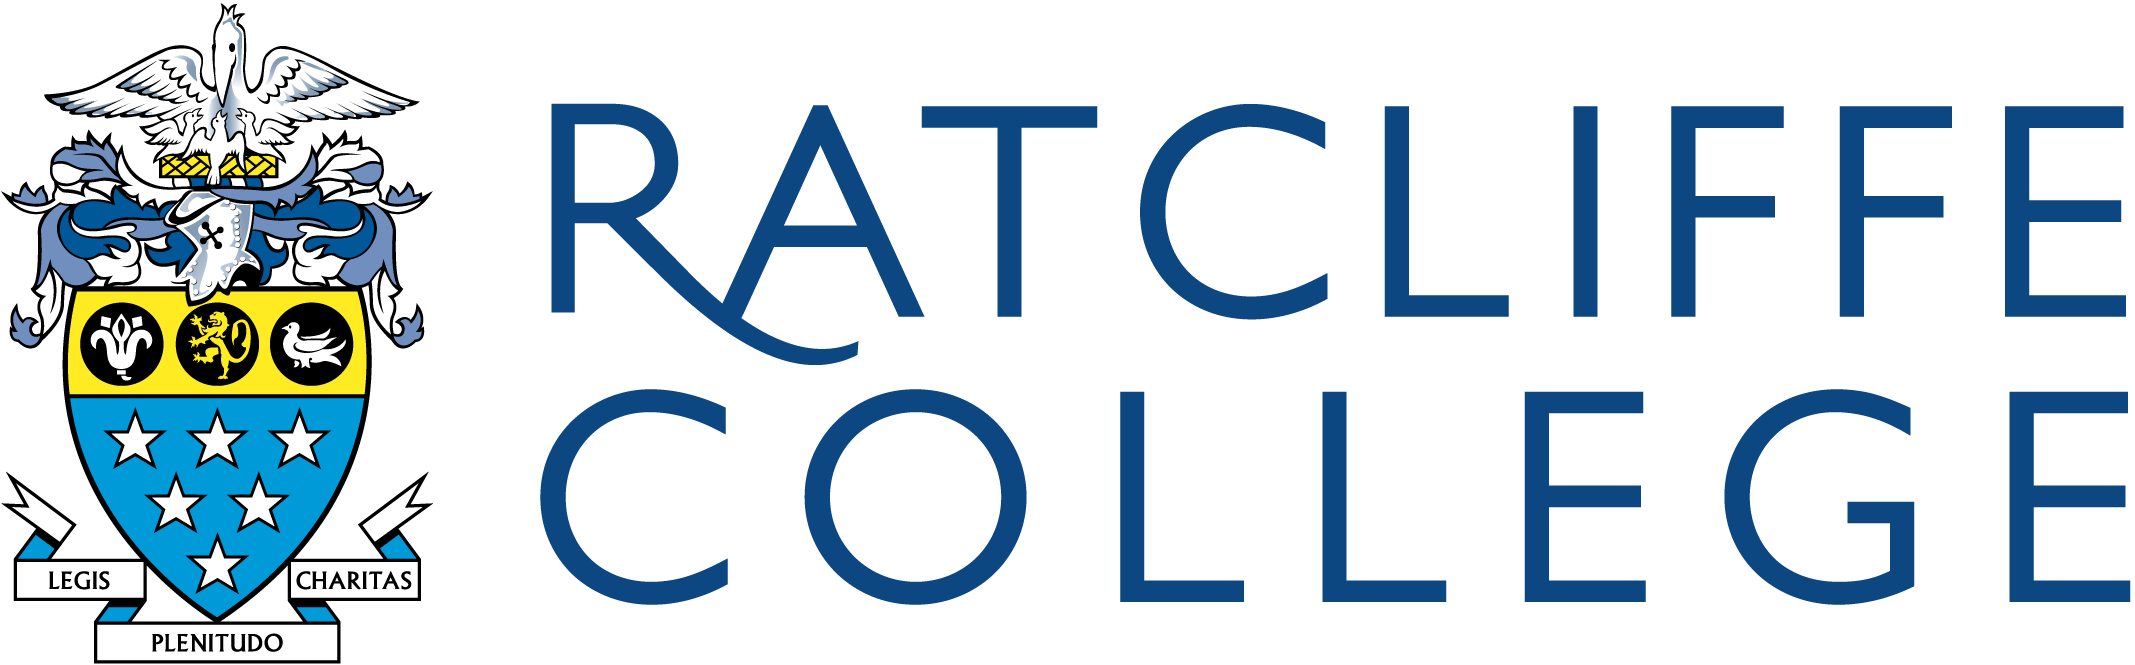 Ratcliffe College Preparatory School